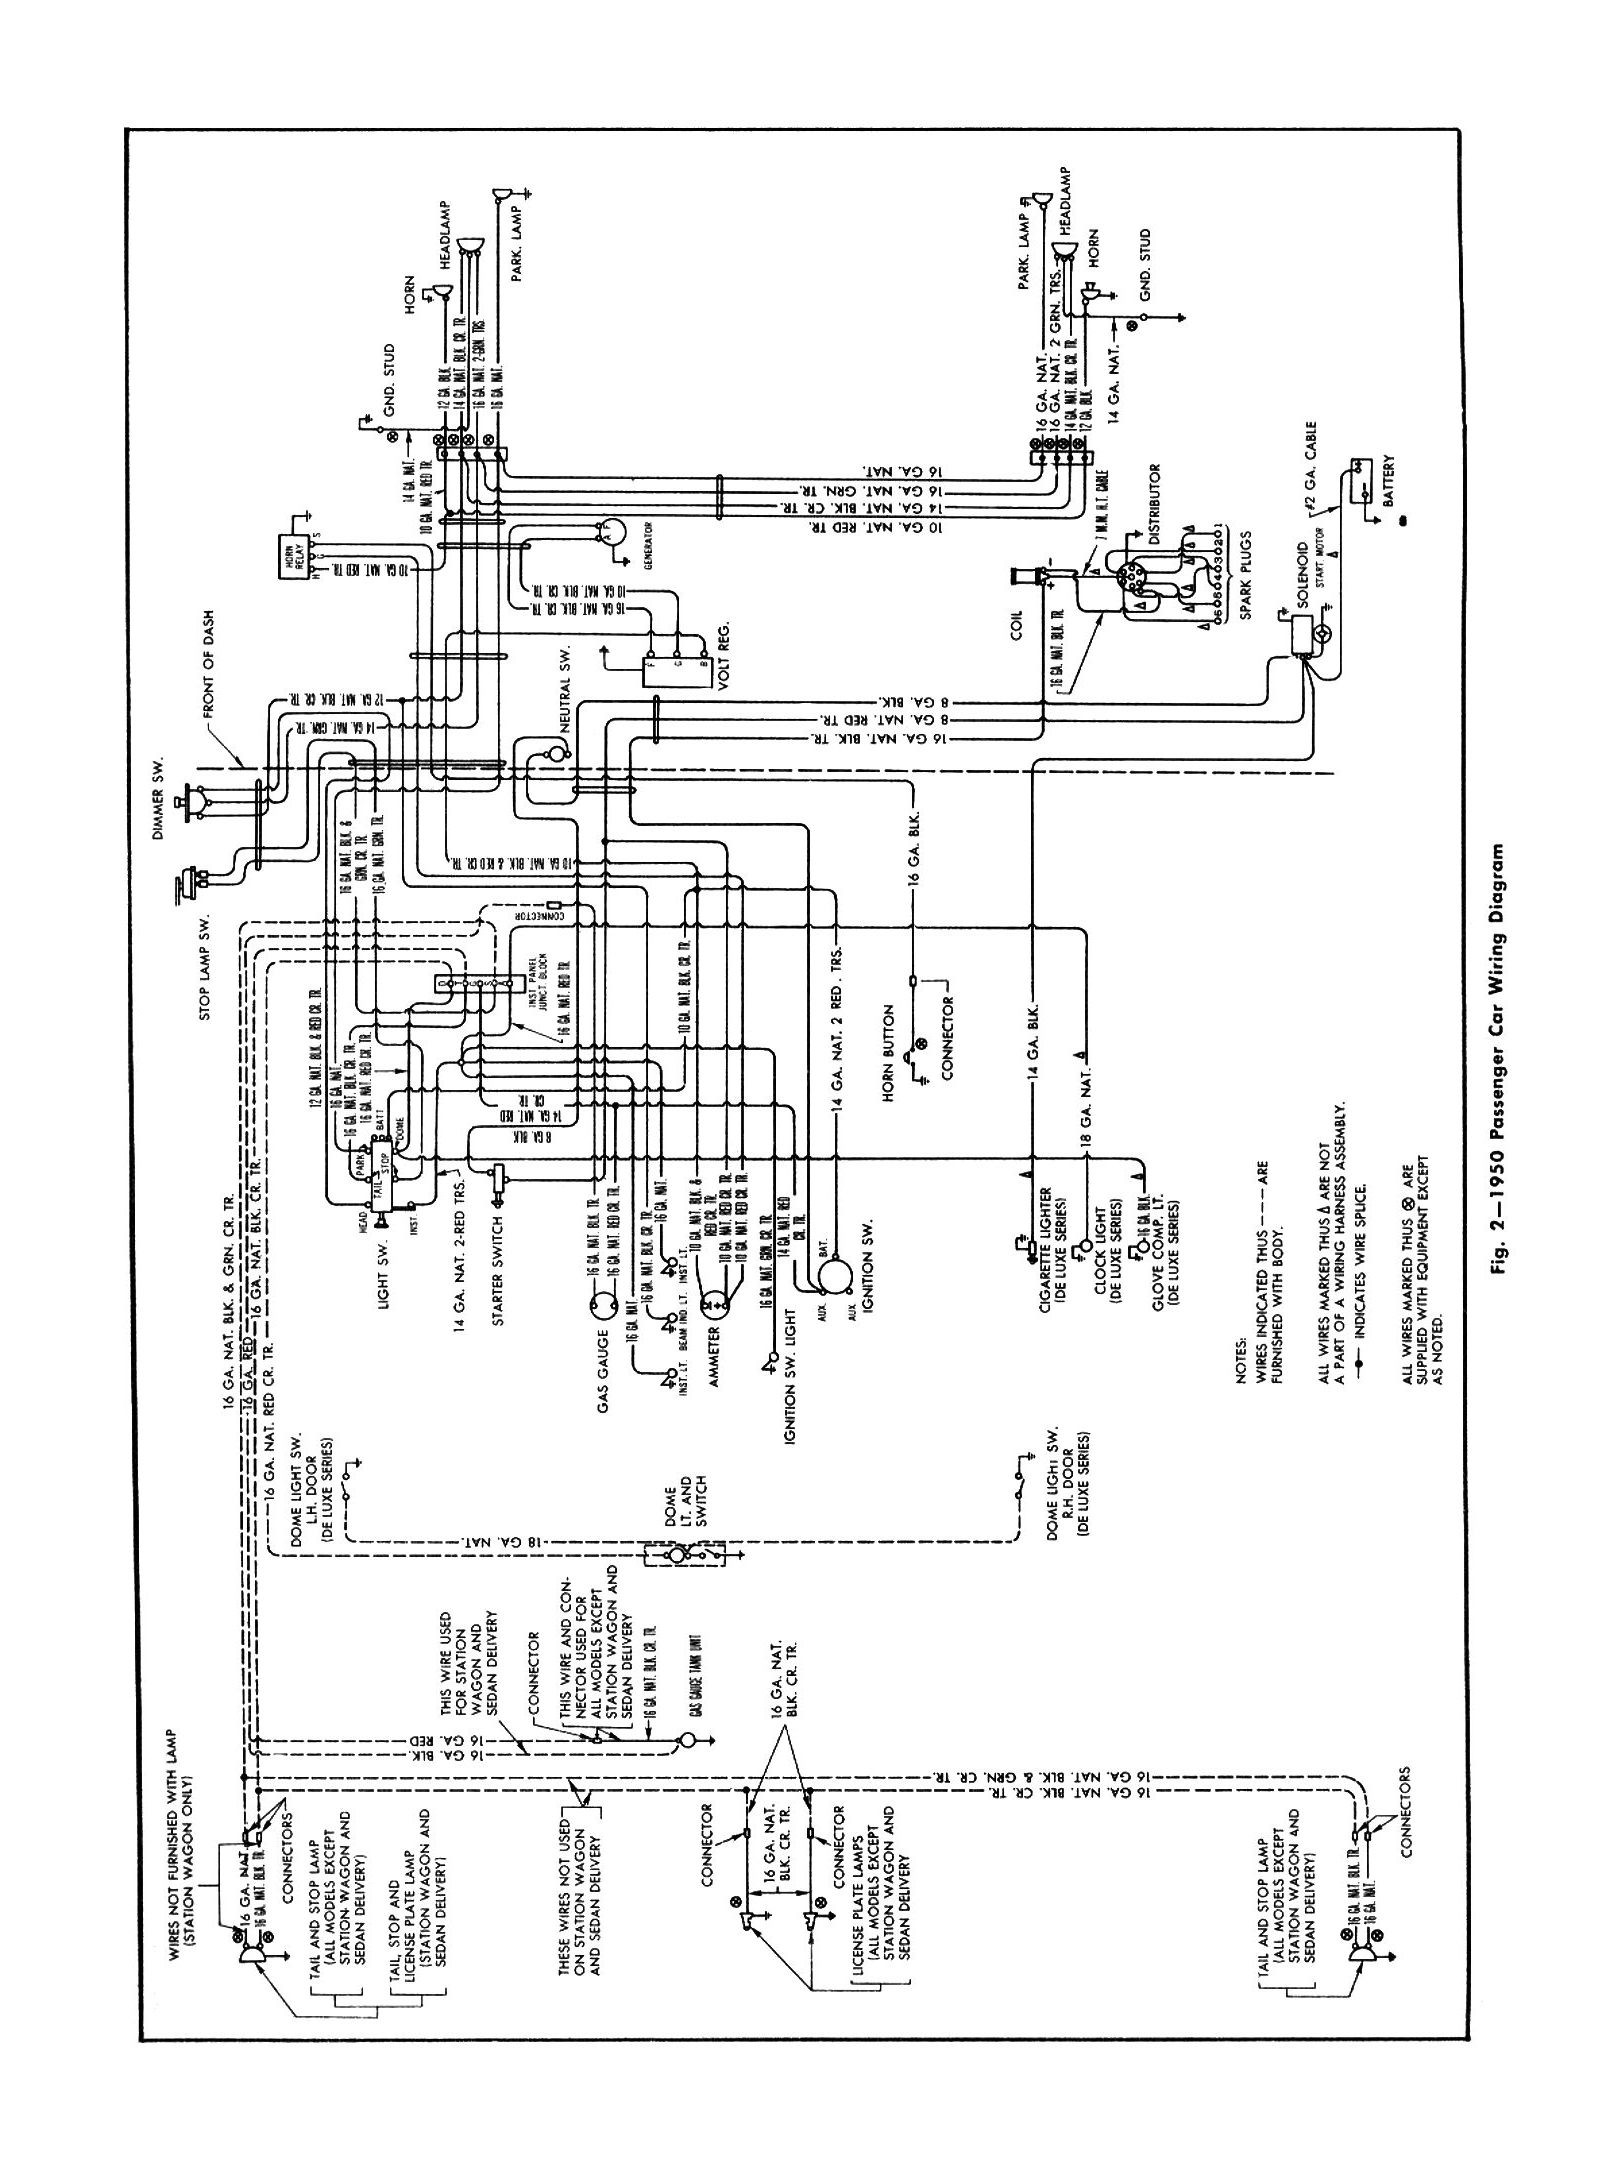 1952 chevy truck turn signal wiring diagram  1952  free